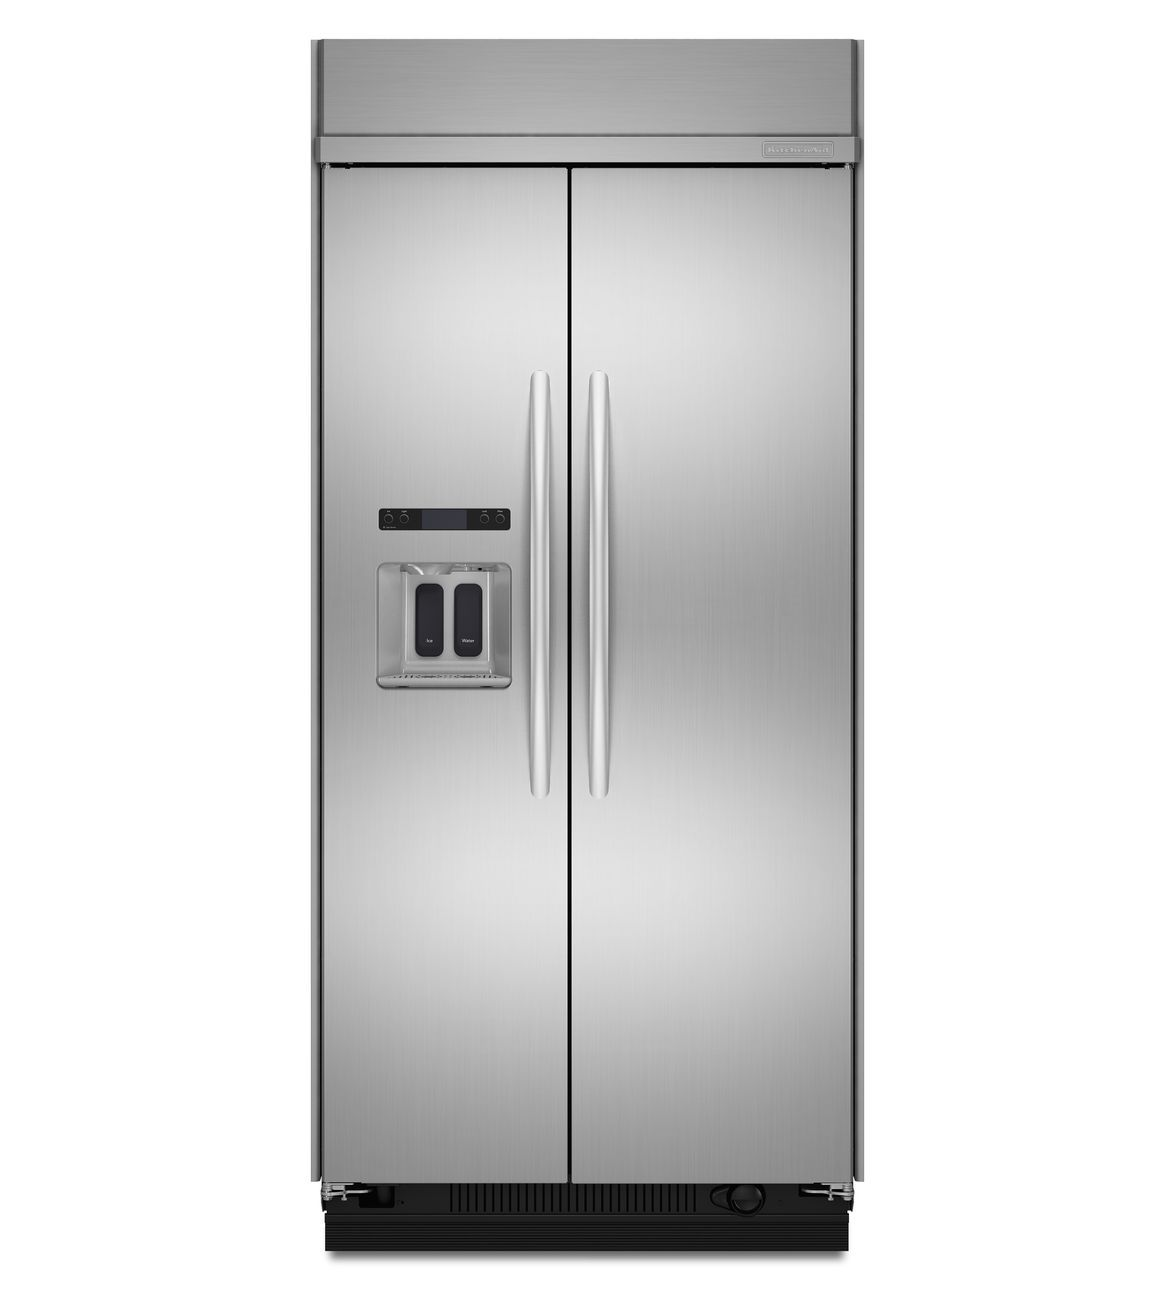 KitchenAid® Architect® Series II Built-In Side-by-Side Refrigerator